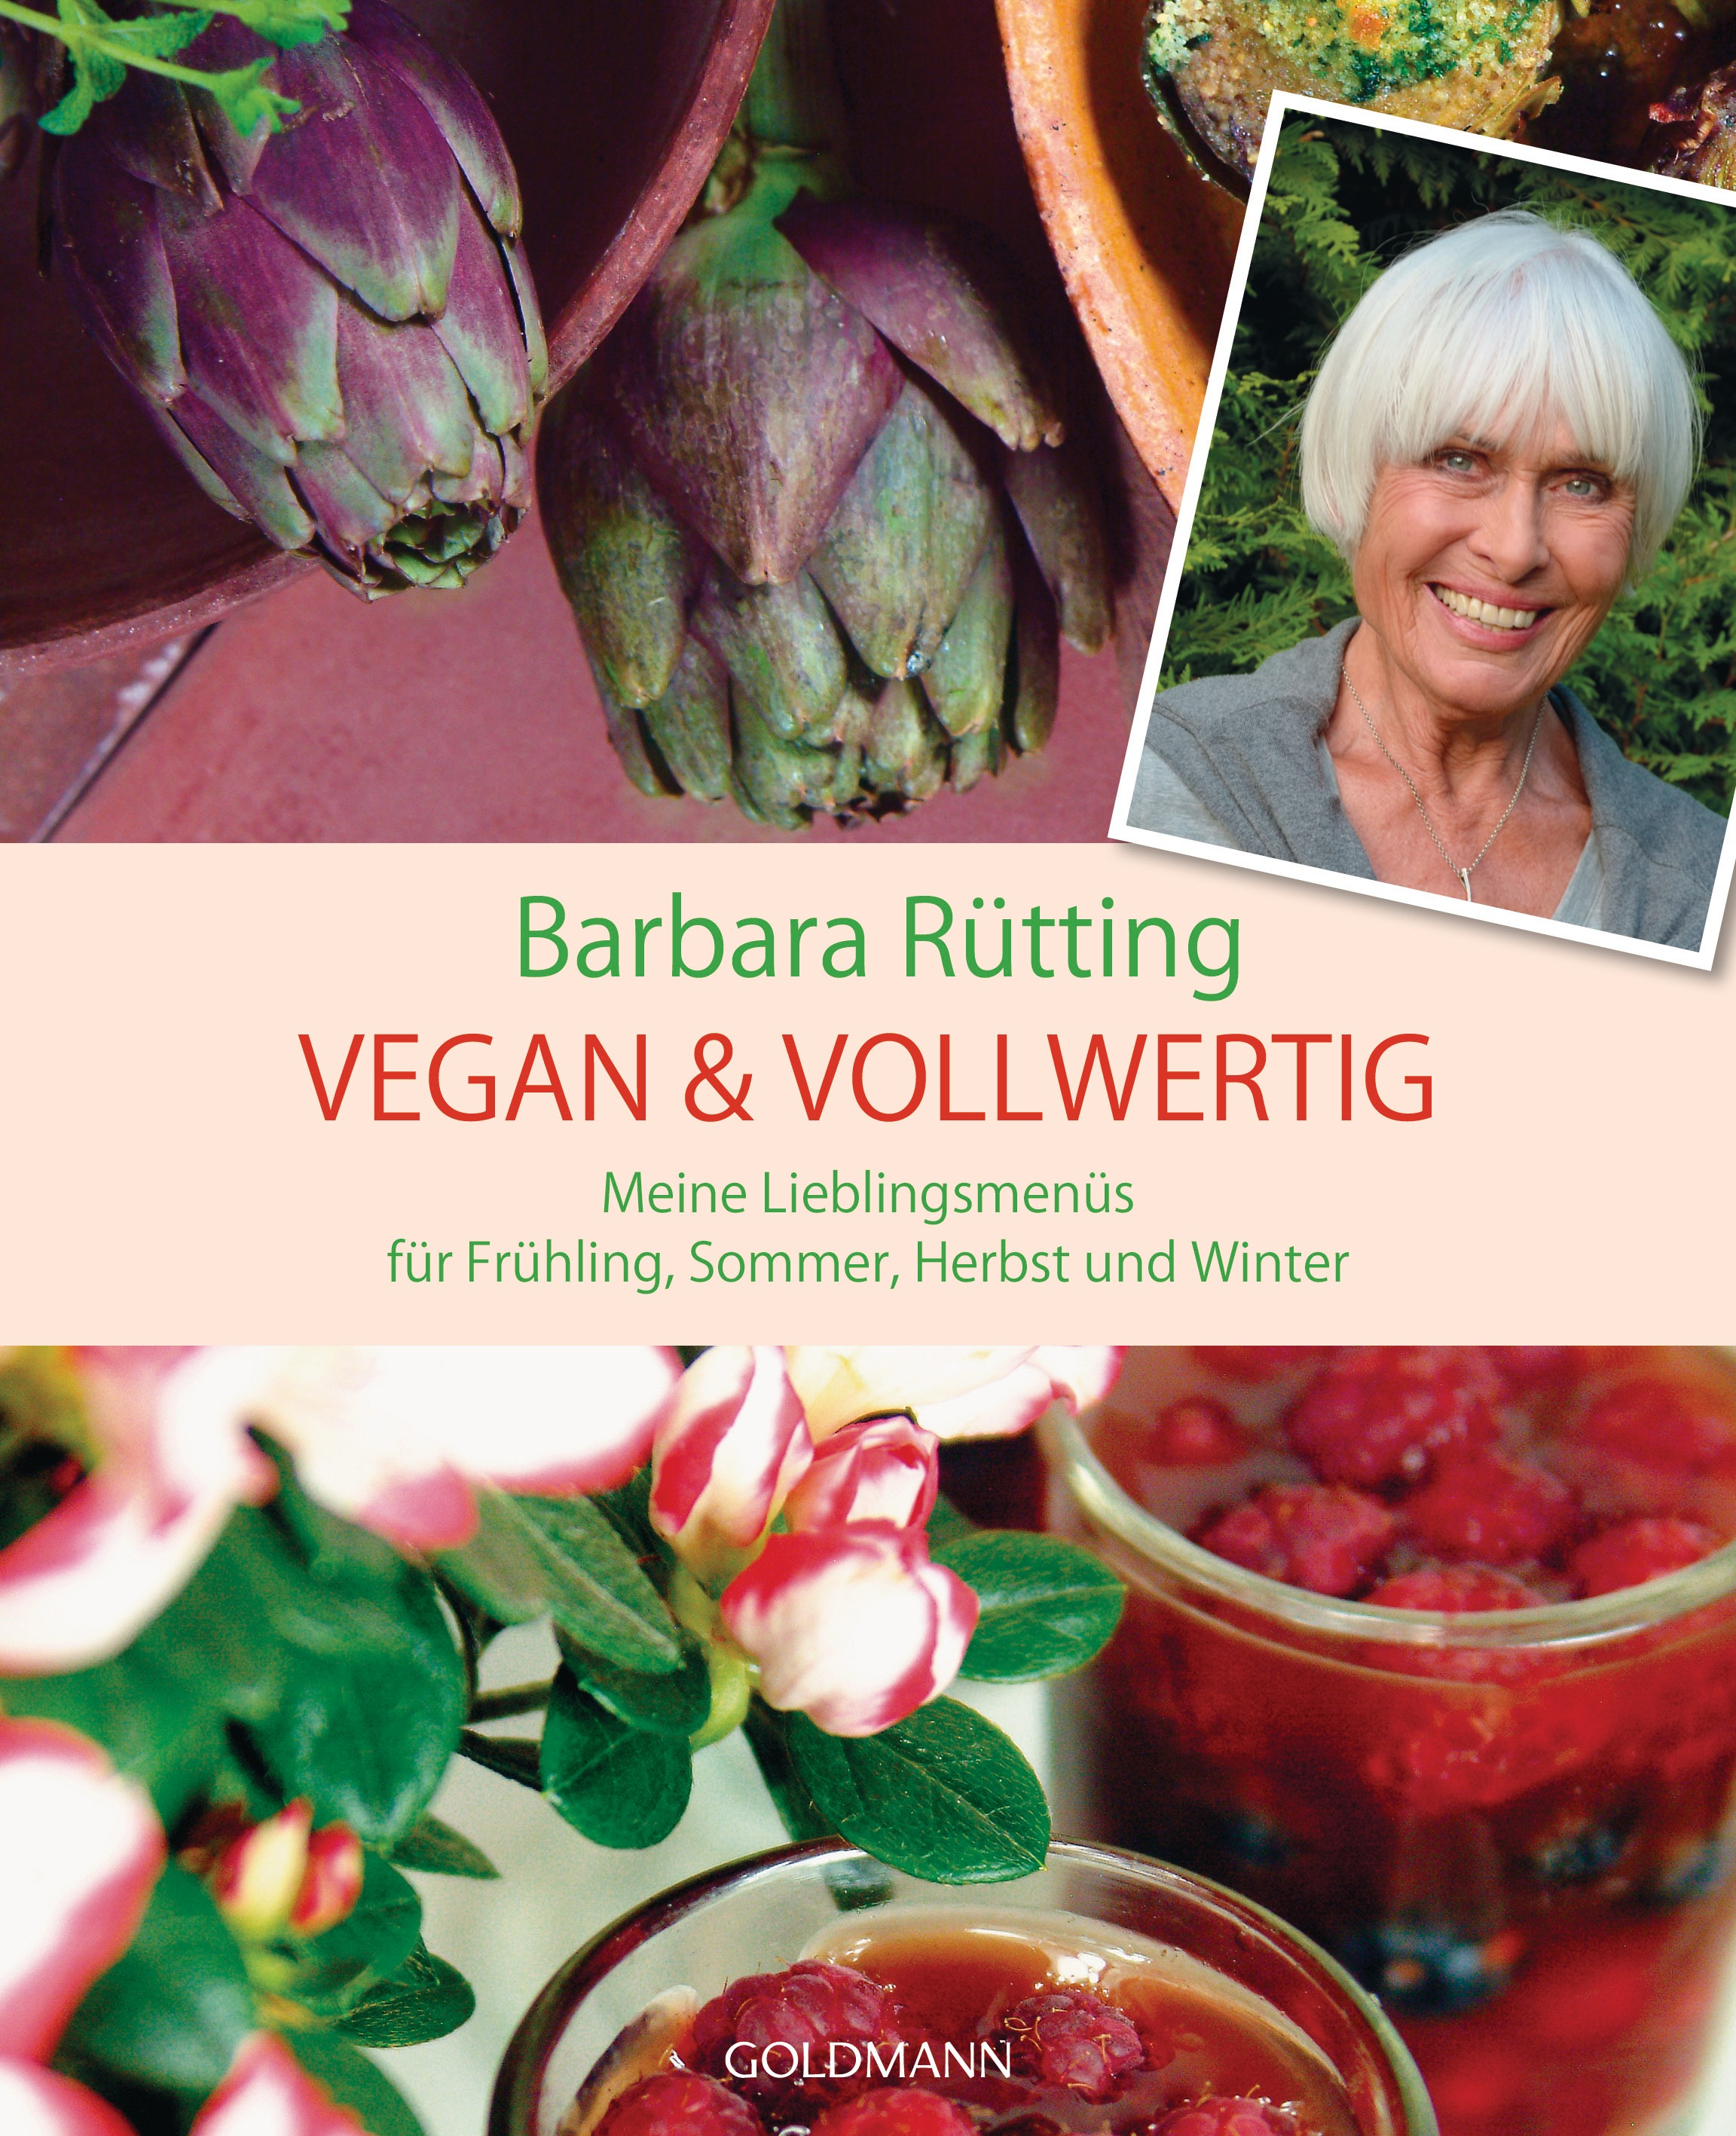 https://www.randomhouse.de/content/edition/covervoila_hires/Ruetting_BVegan_vollwertig_162109.jpg